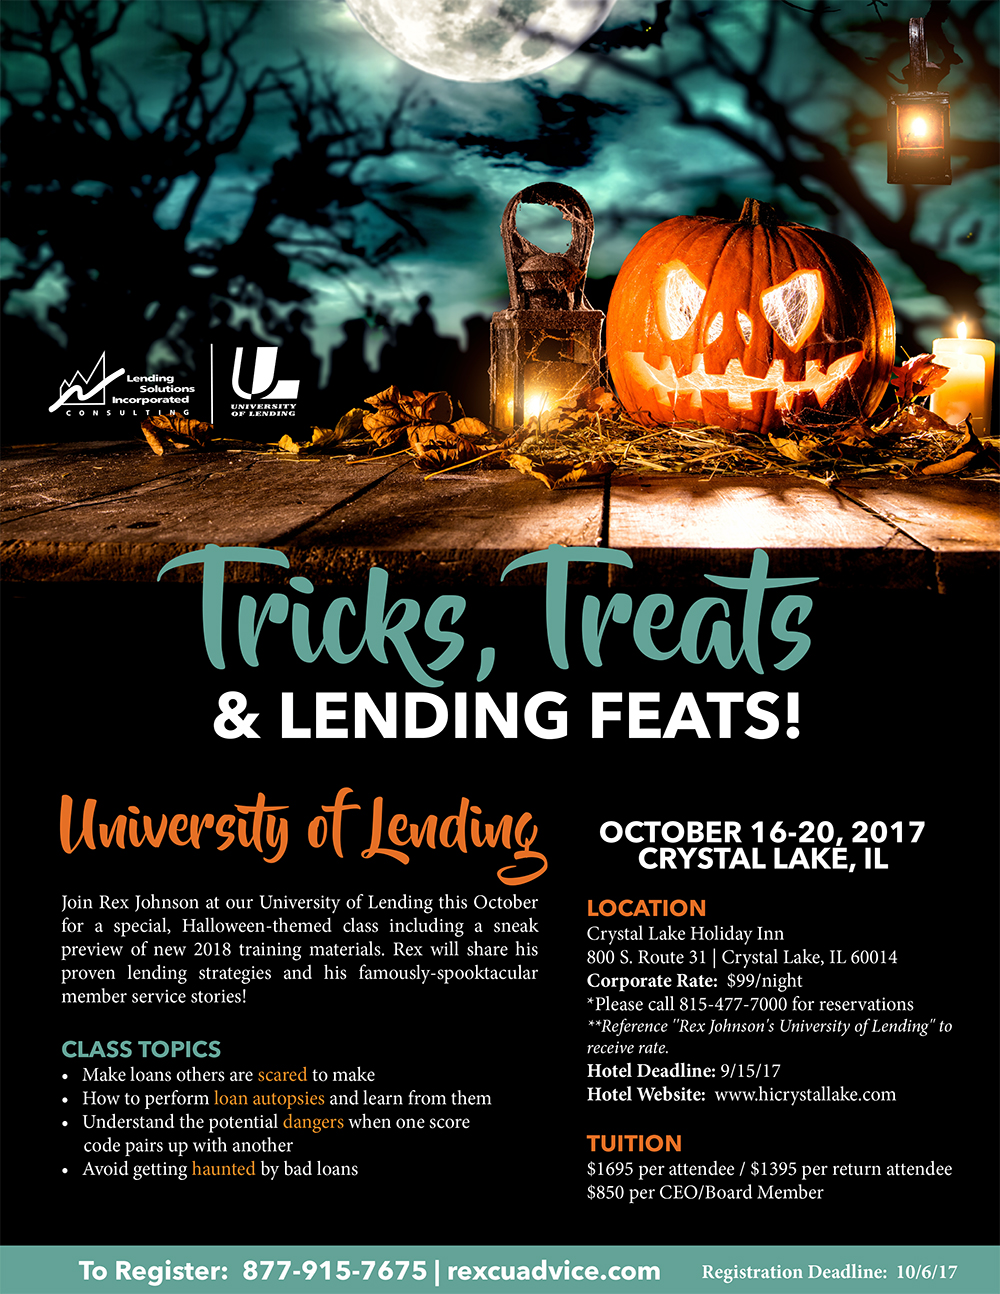 5-Day University of Lending - Crystal Lake, IL - October 16-20, 2017